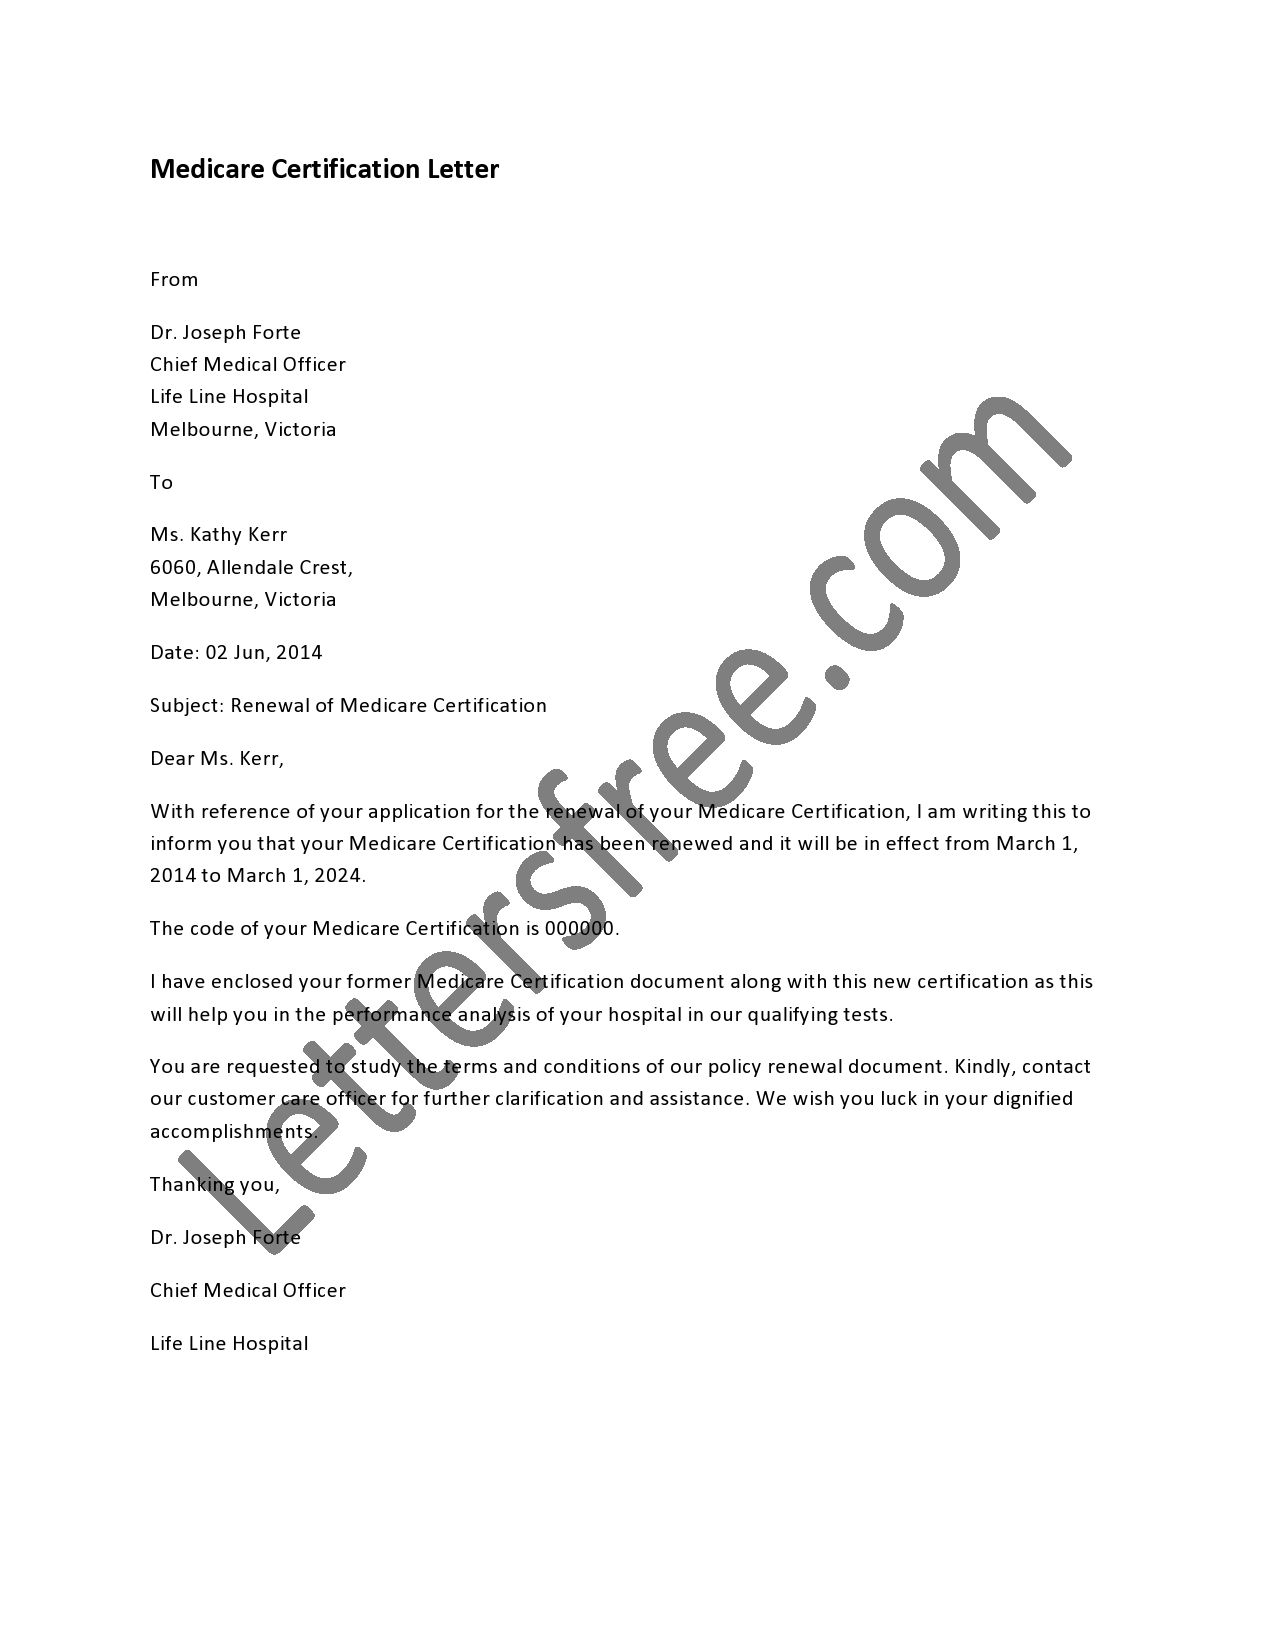 Examples of medicare certification letter in a well-drafted and ...